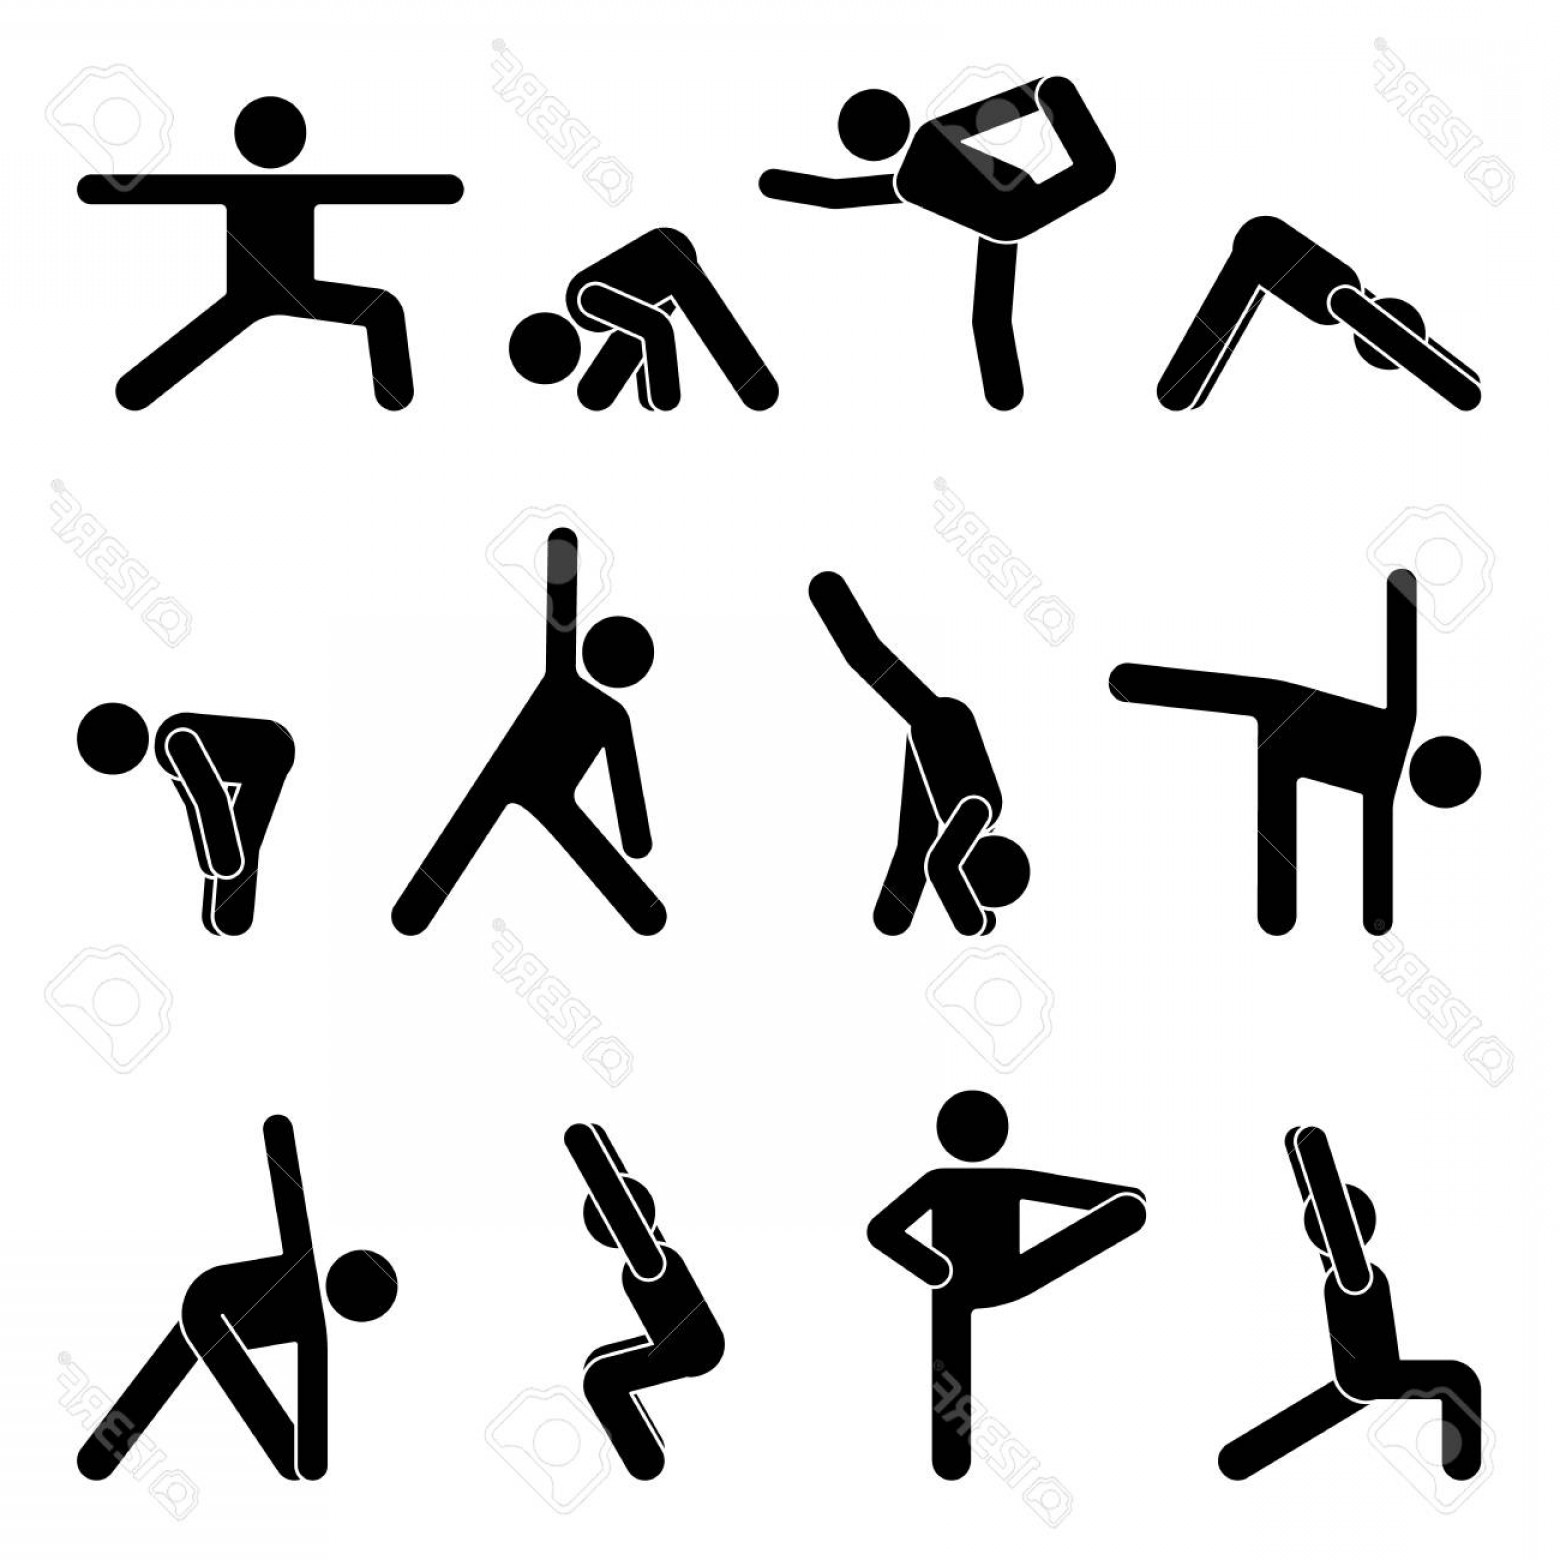 Yoga Stick Figure Vector: Photostock Vector Stick Figure Basic Yoga Position Set Vector Illustration